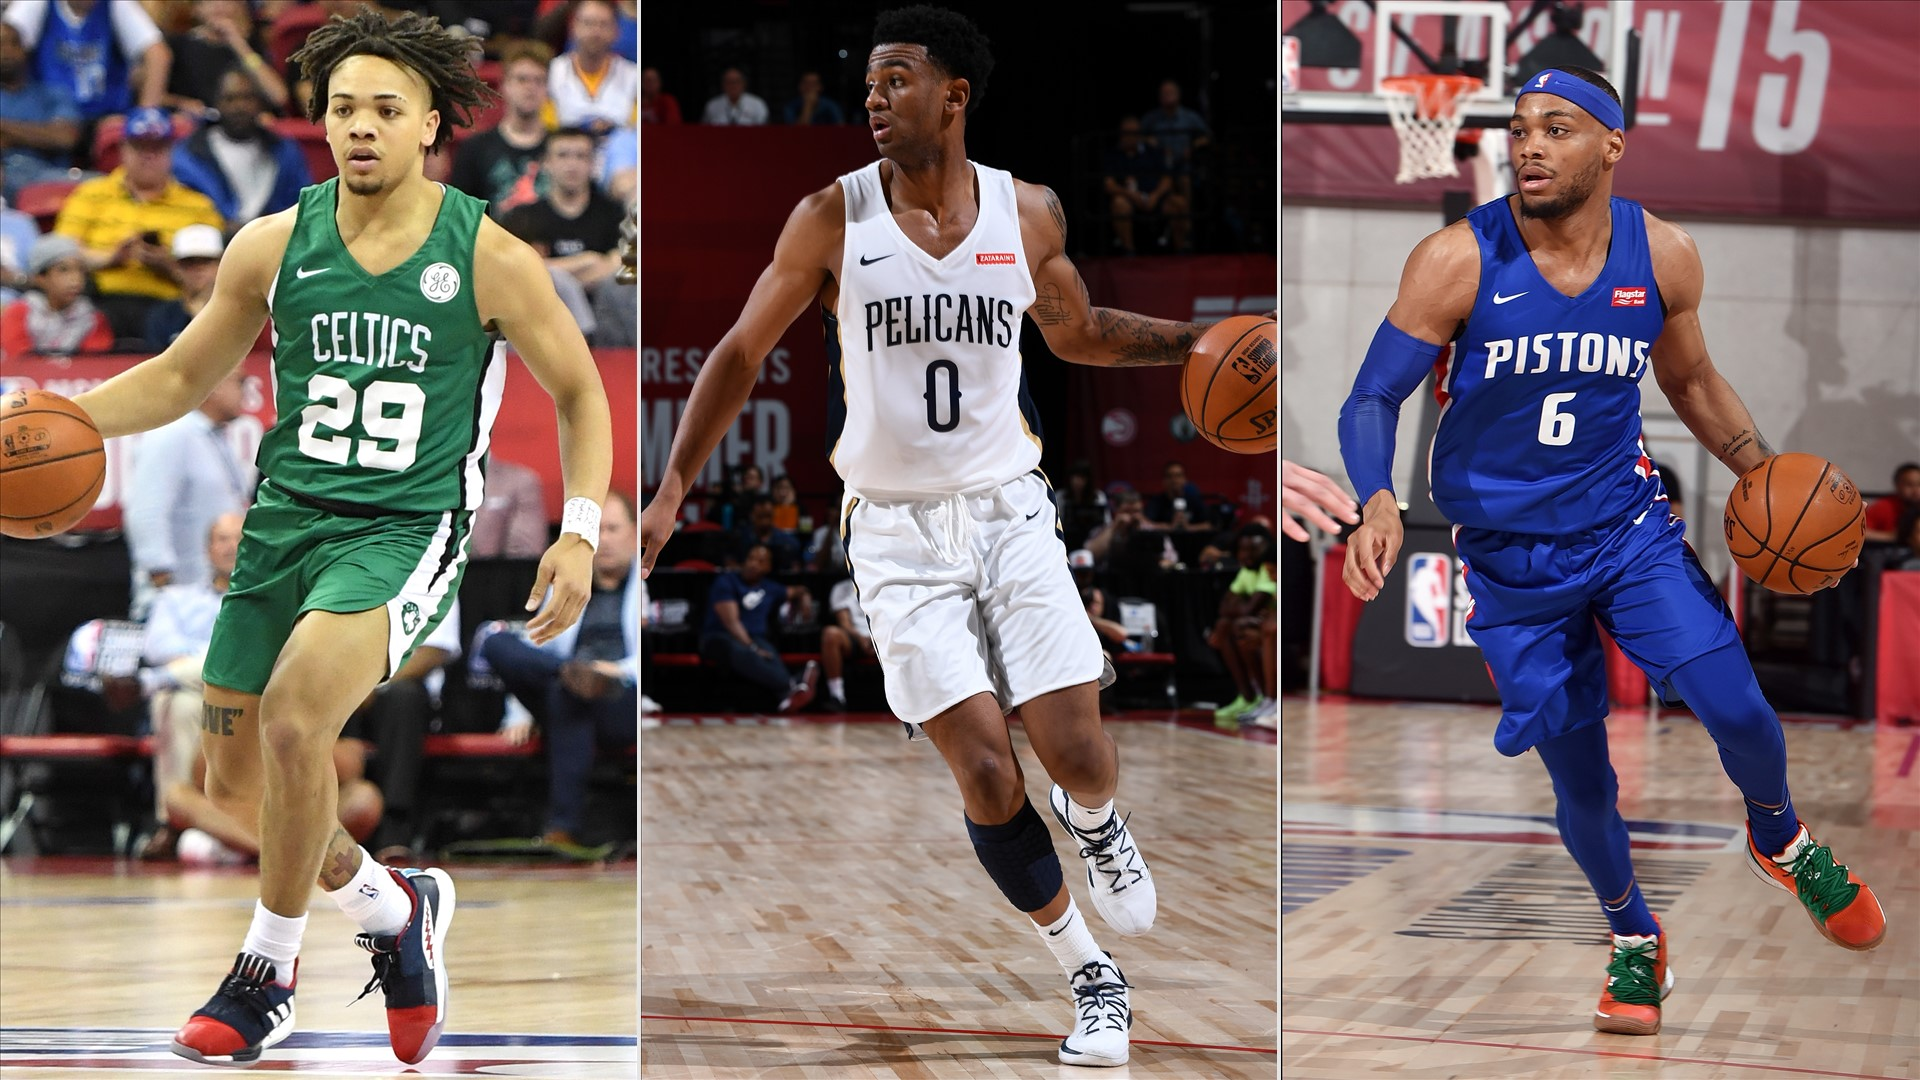 Nba Summer League 2019 What To Watch During The The Quarterfinals